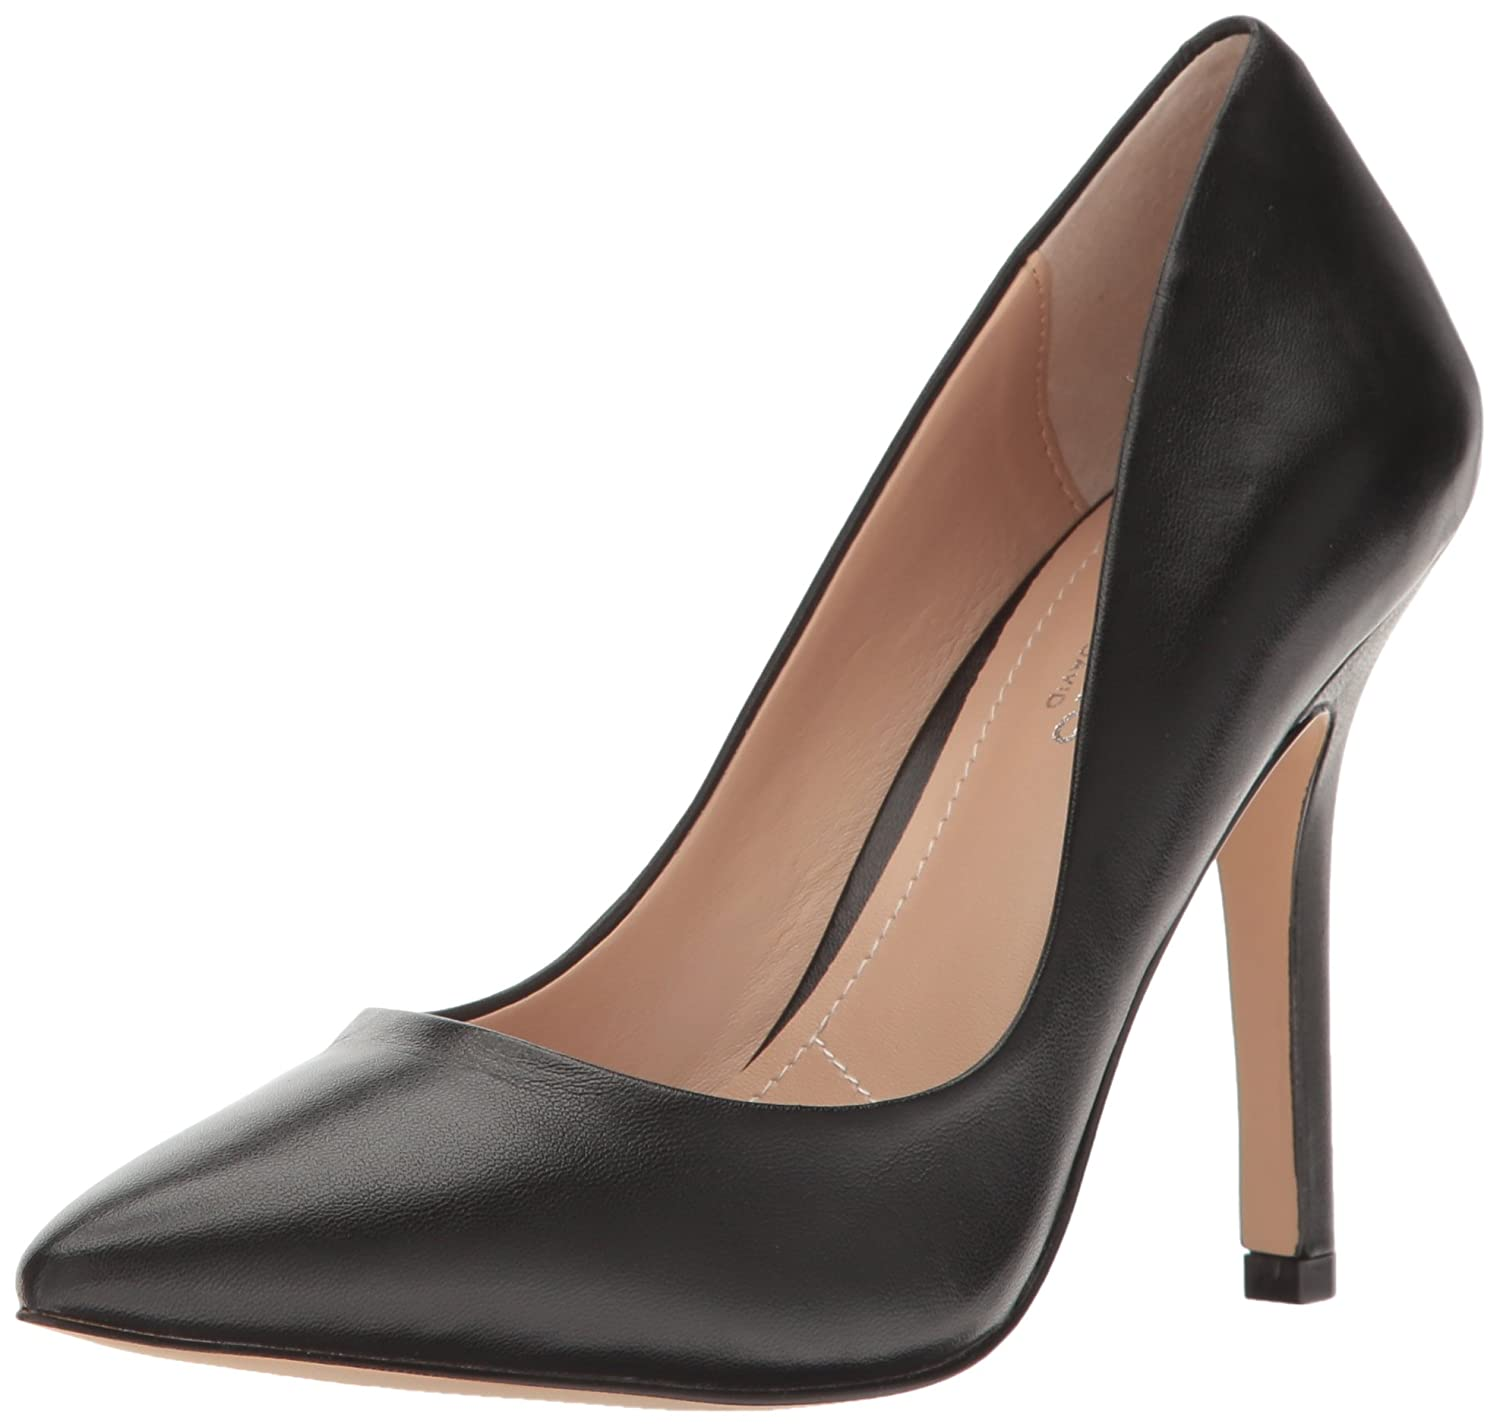 Charles by Charles David Women's Maxx Pump B06XN5JMXP 7 B(M) US|Black